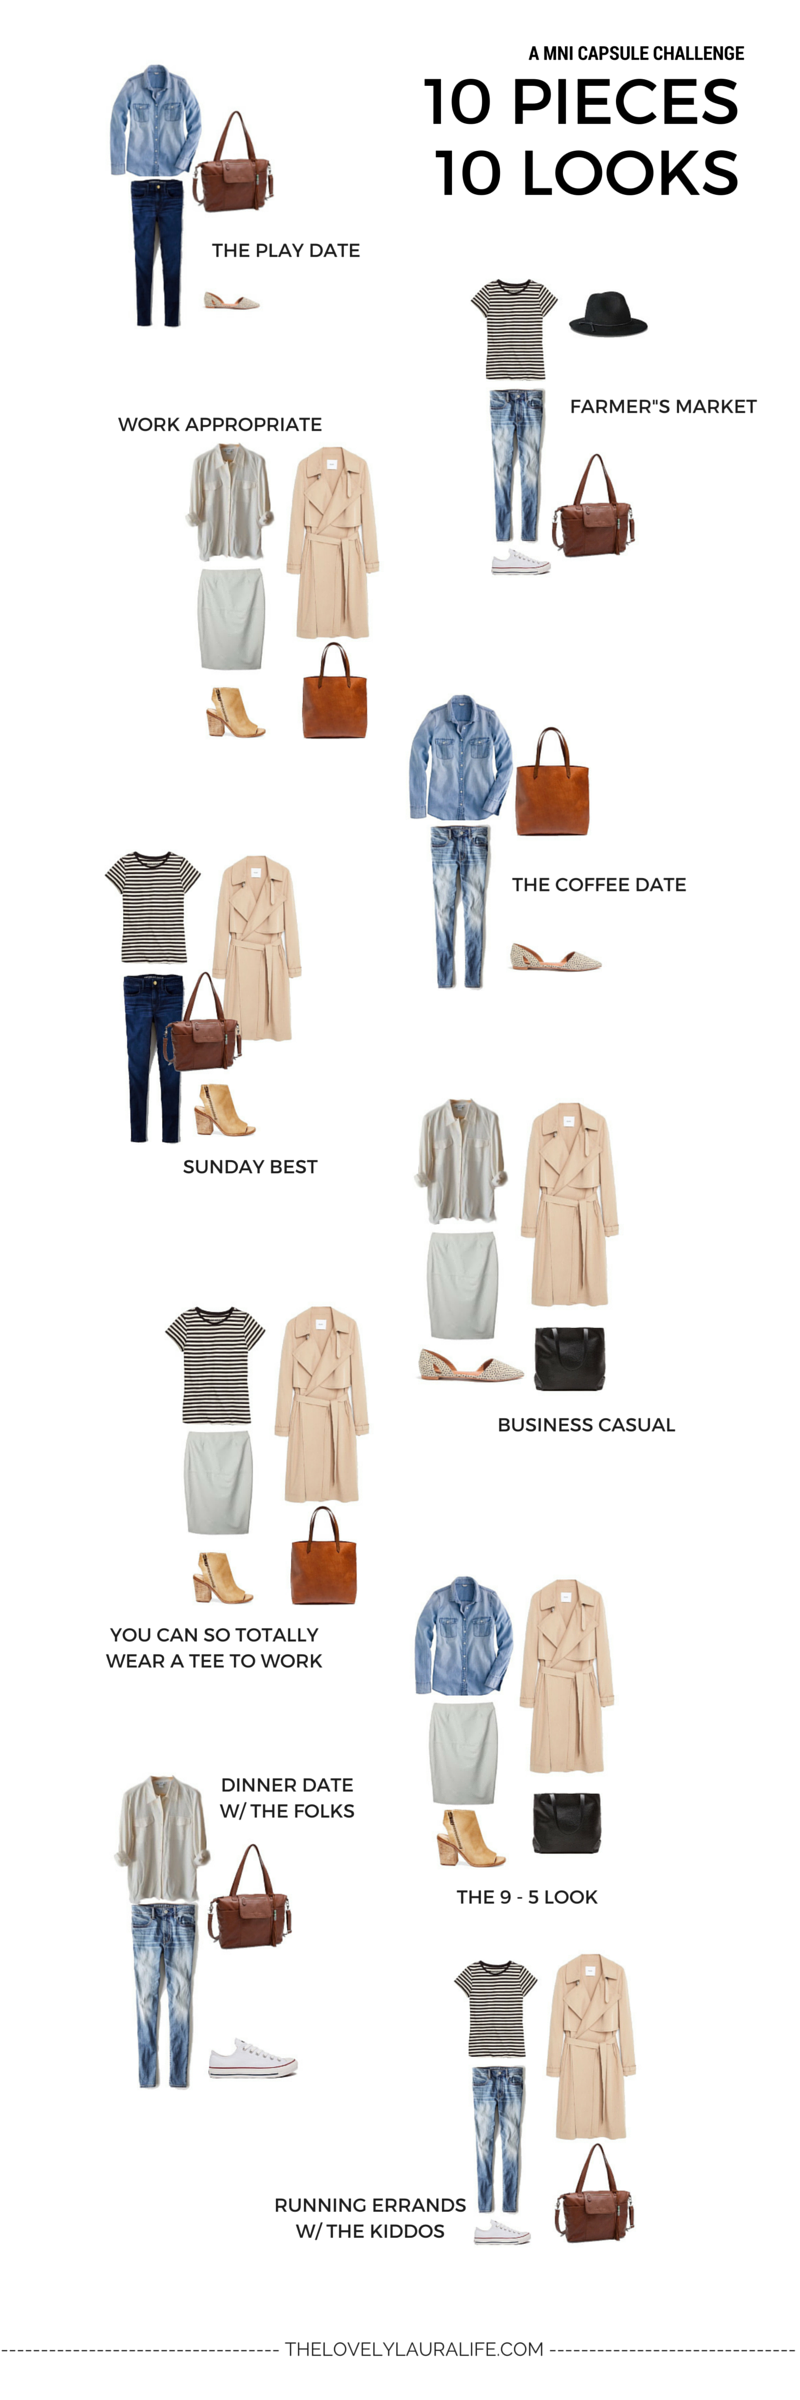 10 X 10 Spring Challenge Recap Pros And Cons Of A Mini Capsule Capsule Outfits Fashion Capsule Capsule Wardrobe